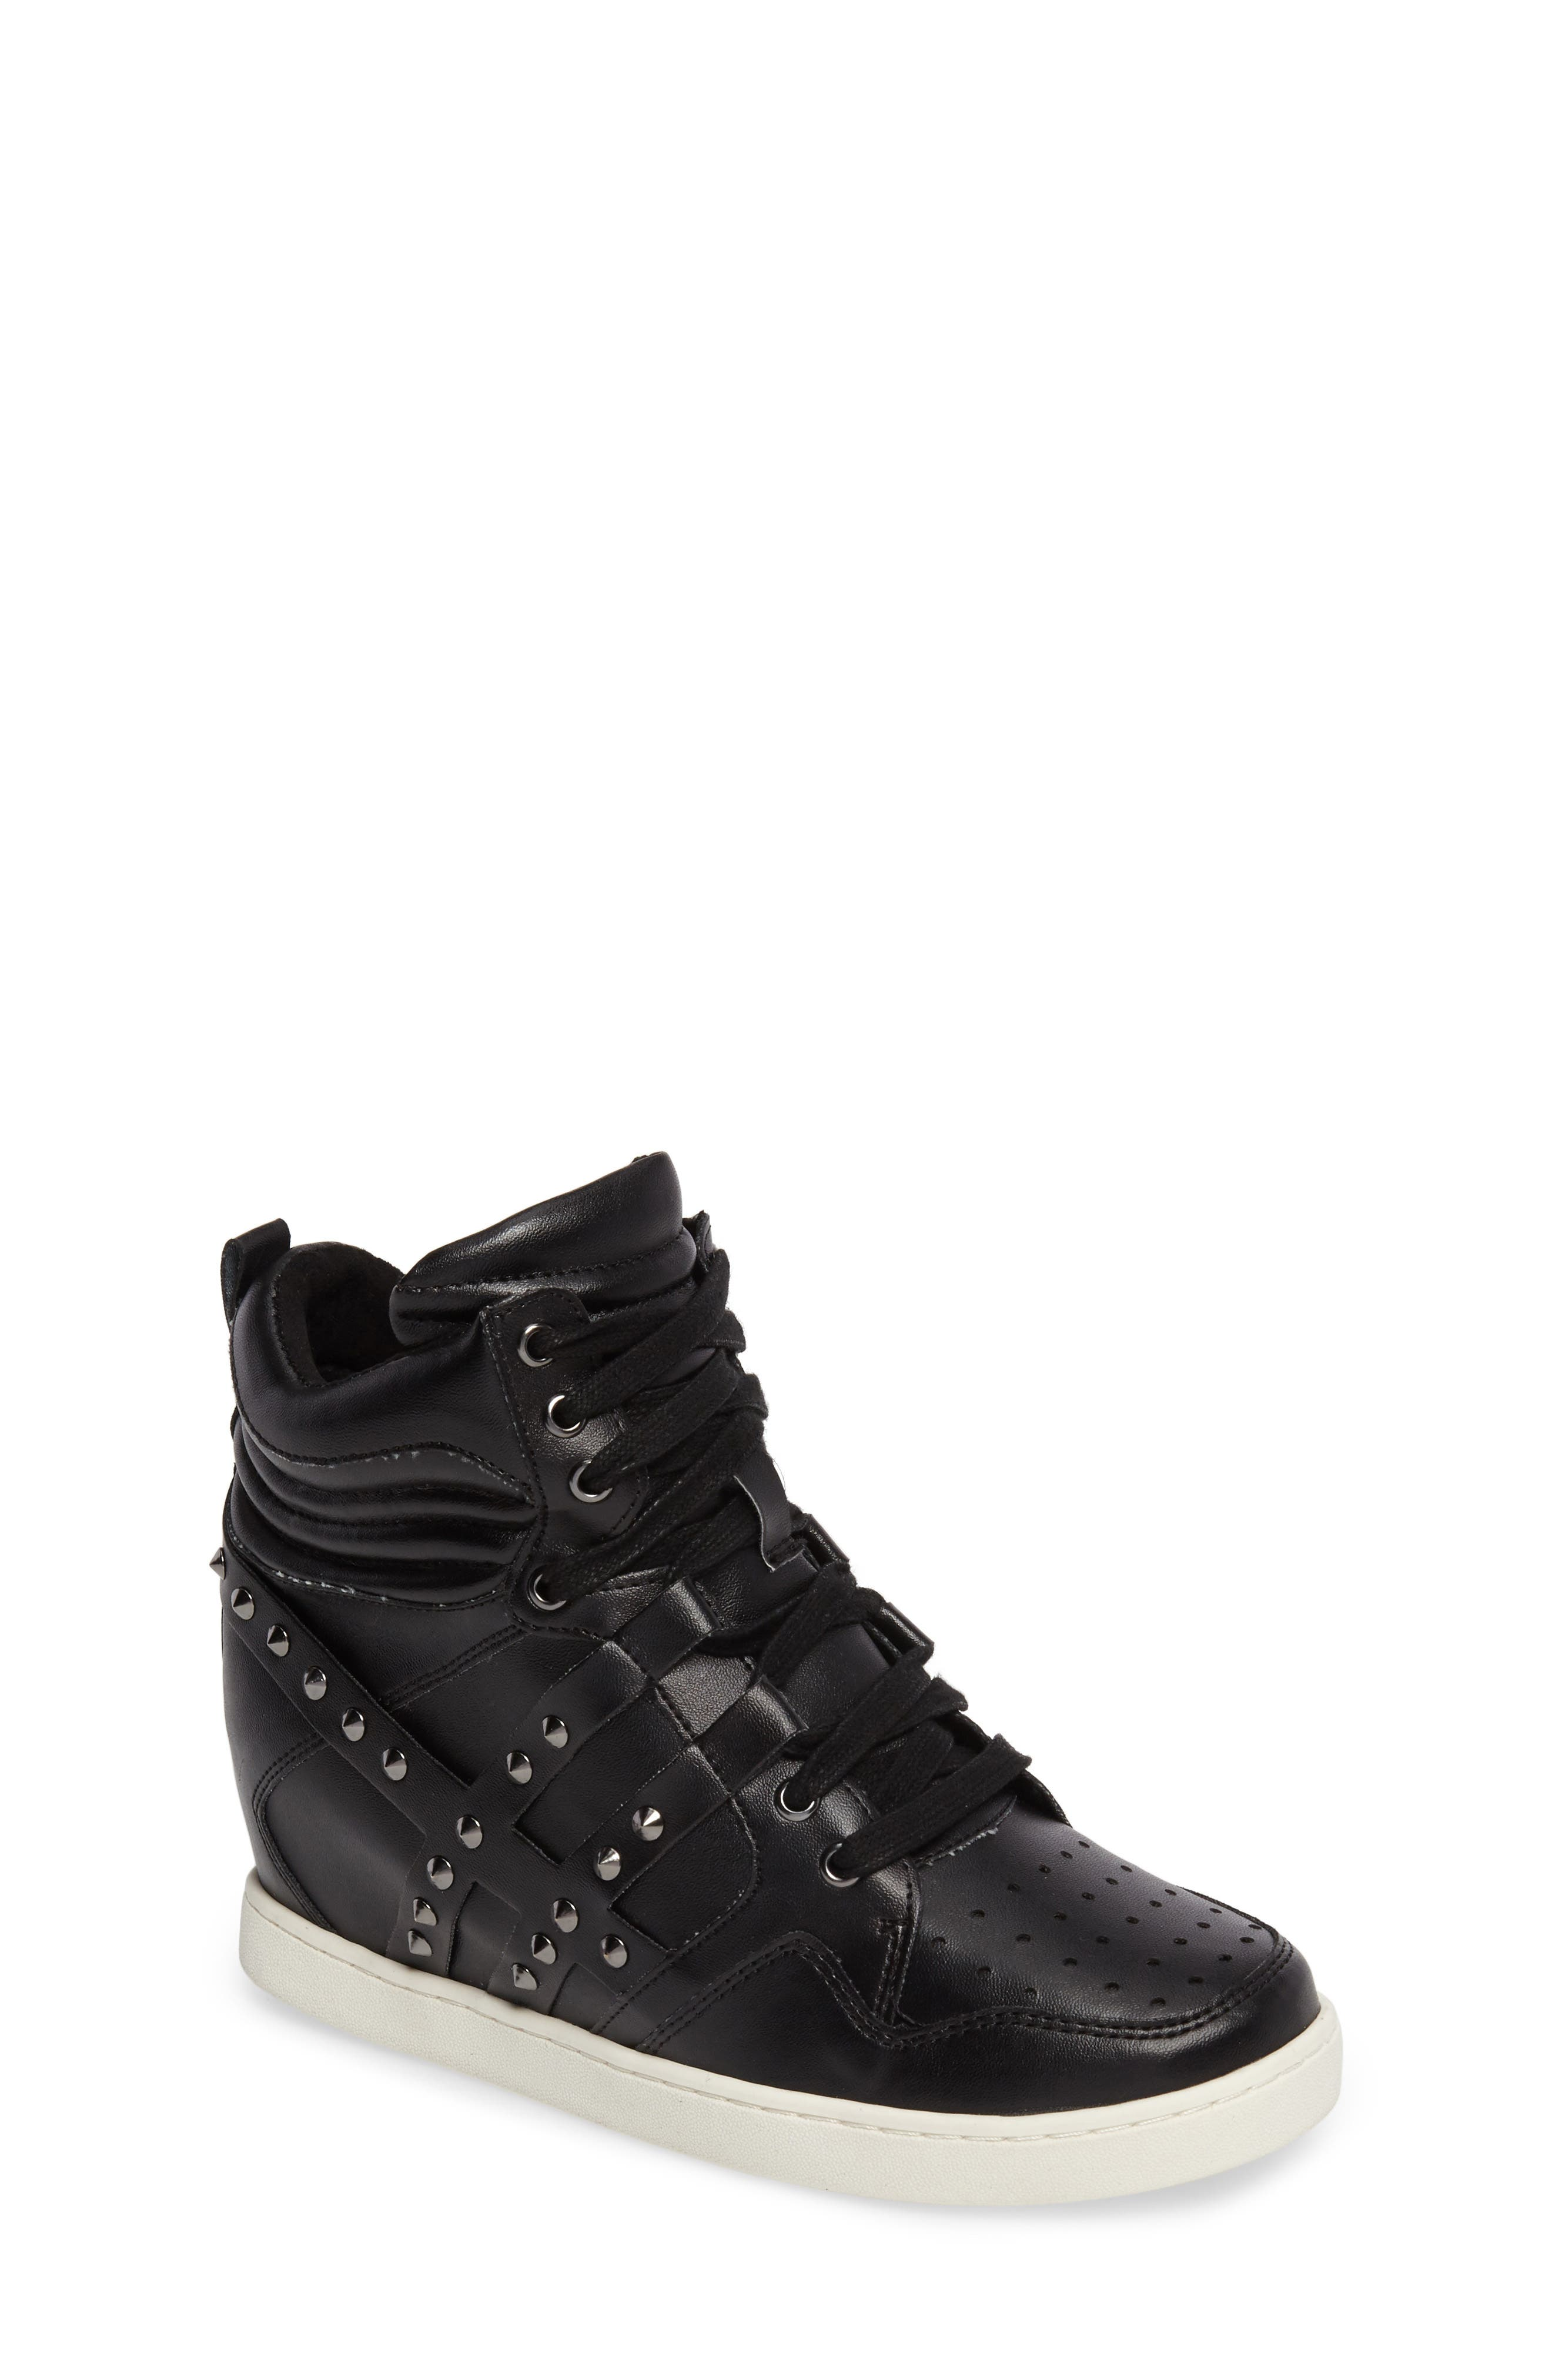 Boogie Chic Studded High Top Sneaker,                         Main,                         color, Black Faux Leather